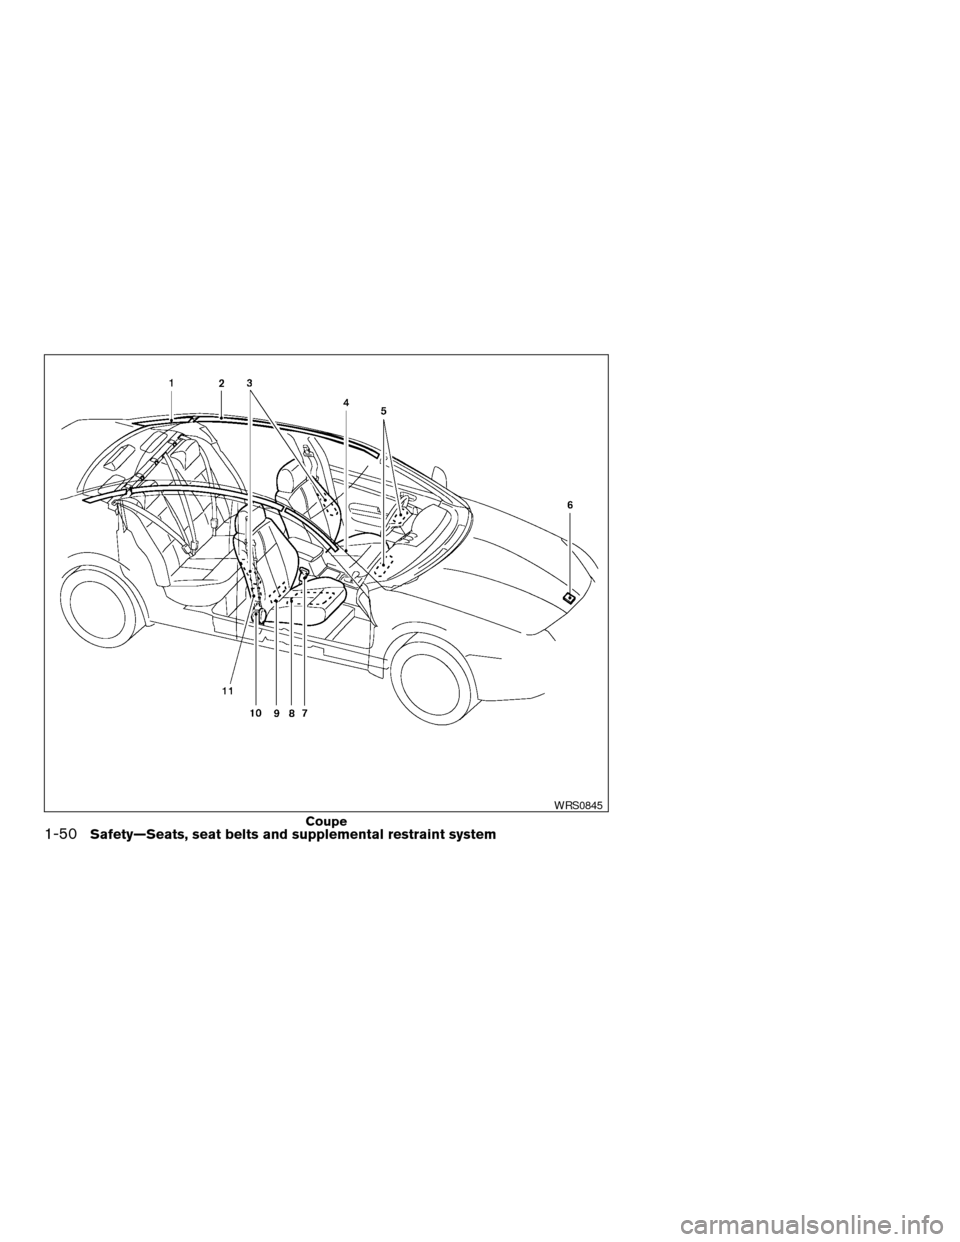 NISSAN ALTIMA COUPE 2009 D32 / 4.G Owners Manual, Page 68